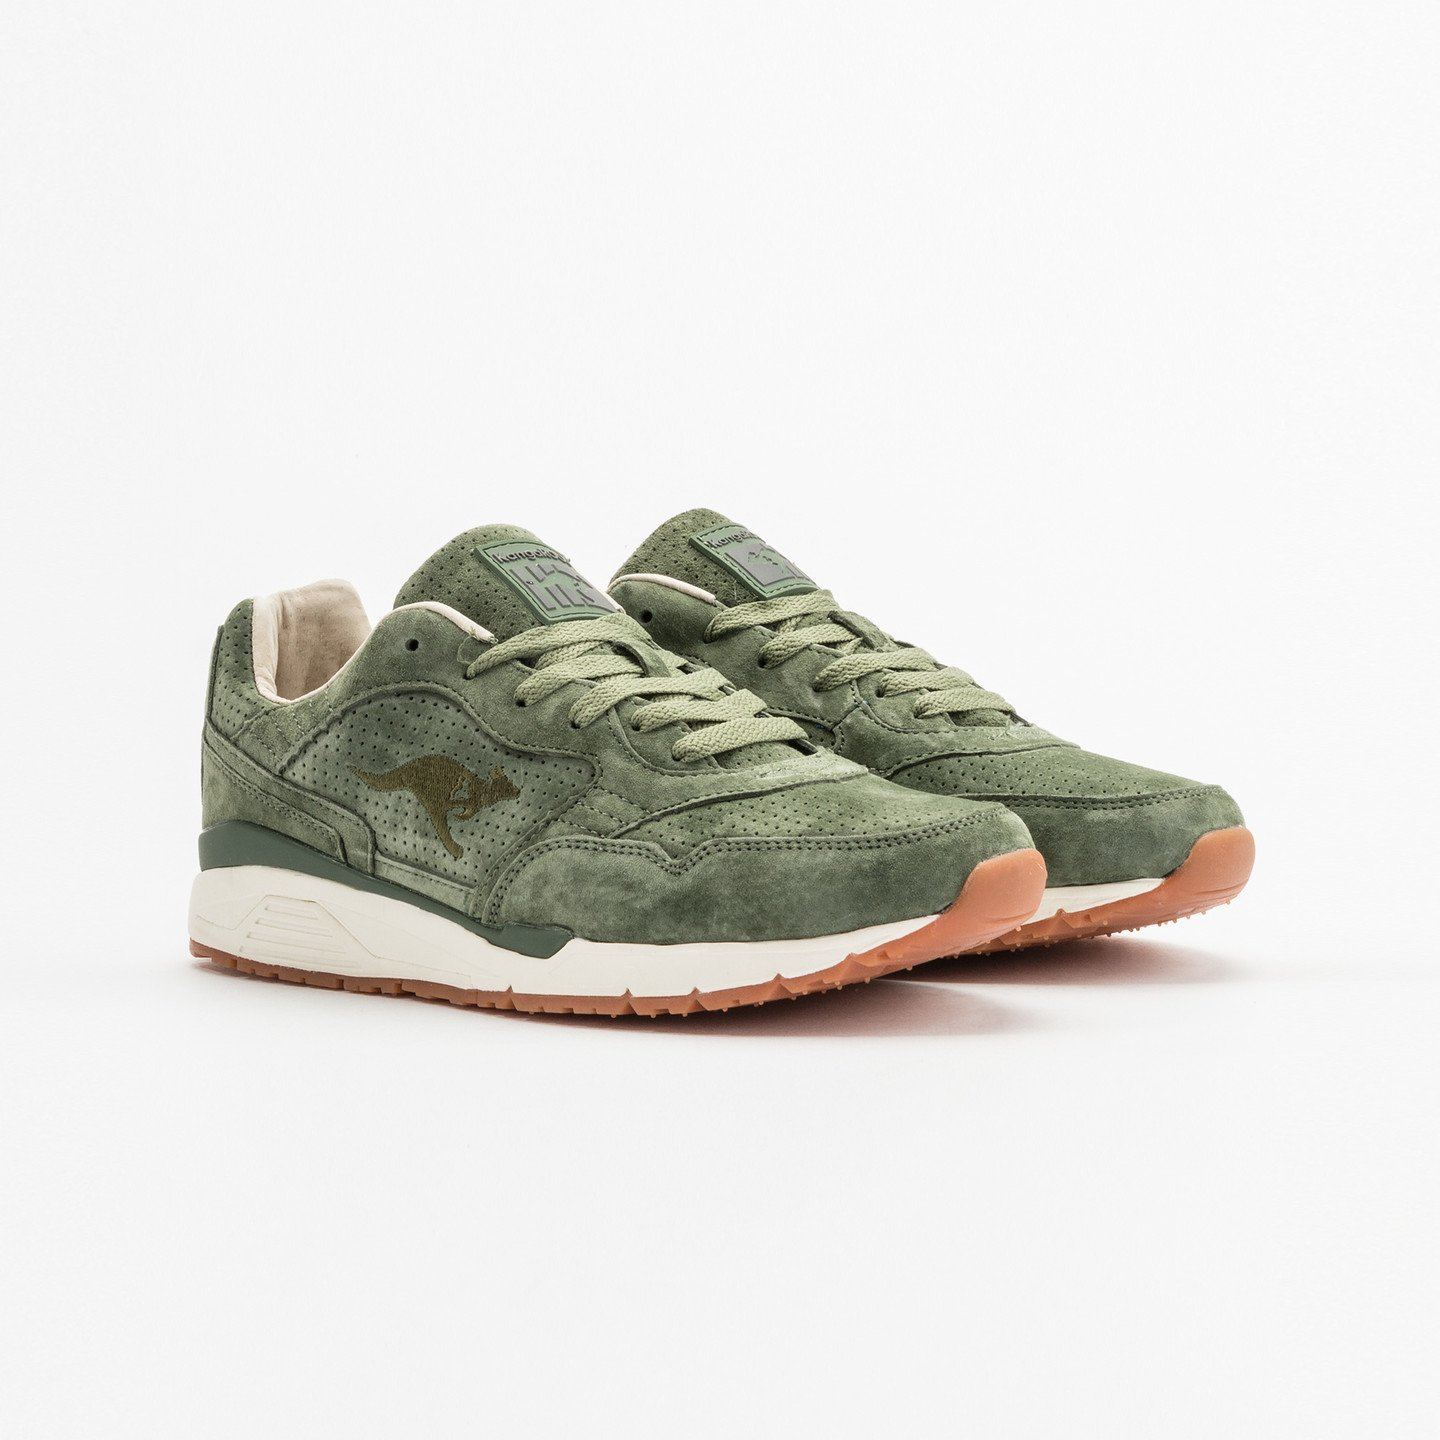 KangaROOS Ultimate Leather Olive Green / Gum 47211 000 8841